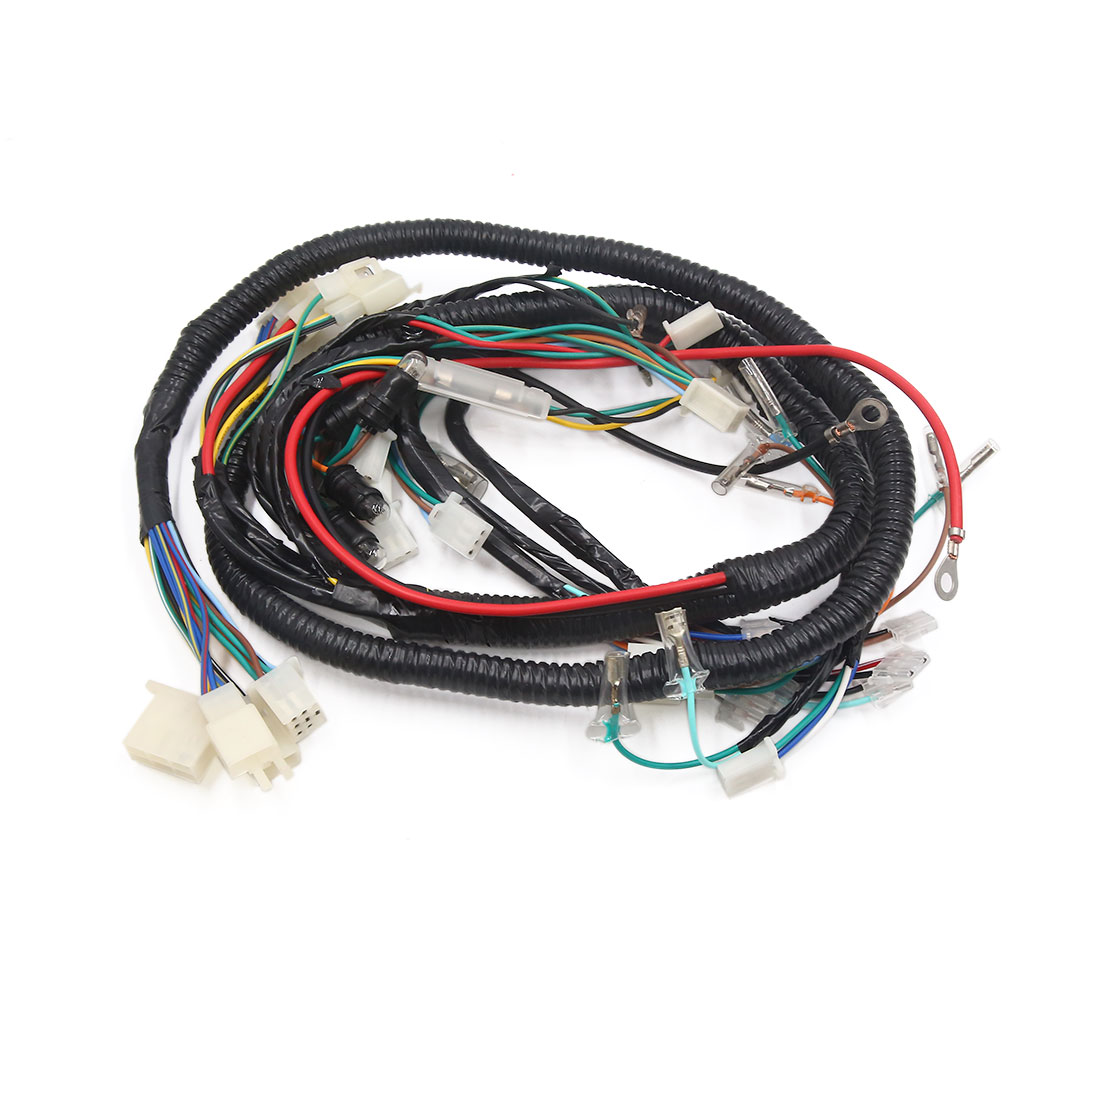 X Scooter Wiring Harness on scooter voltage regulator, scooter speedometer, scooter lights, scooter fuel pump, scooter gas tank, scooter water pump, scooter wheels, scooter air filter,